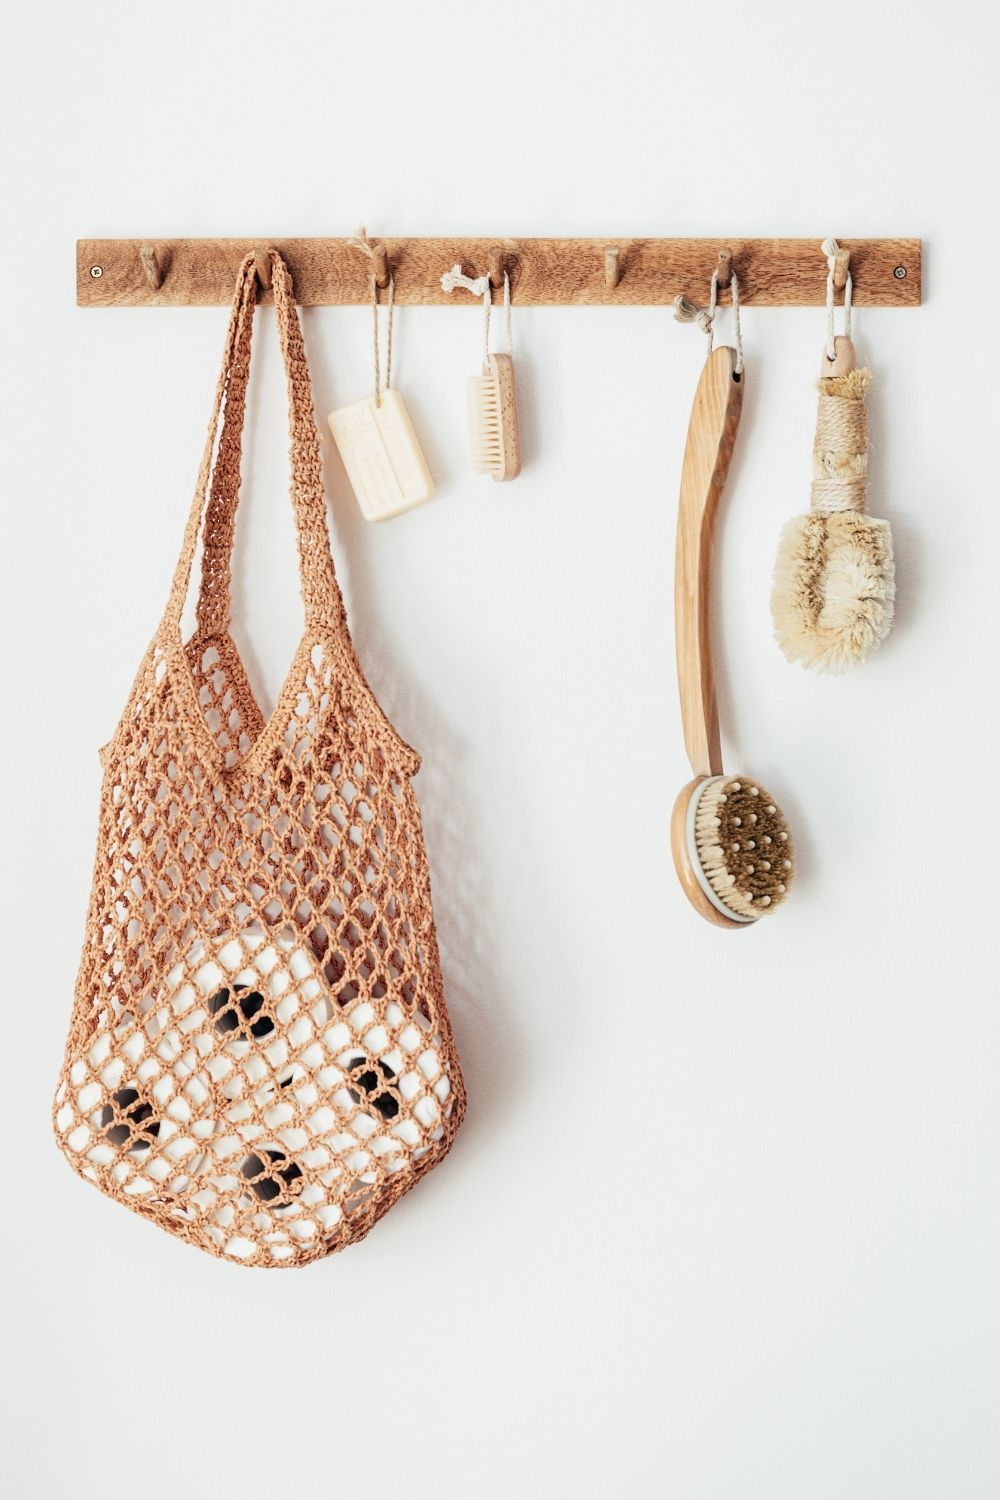 Mesh bag with toilet paper, body brushes and eco-friendly toiletries on wooden hanger